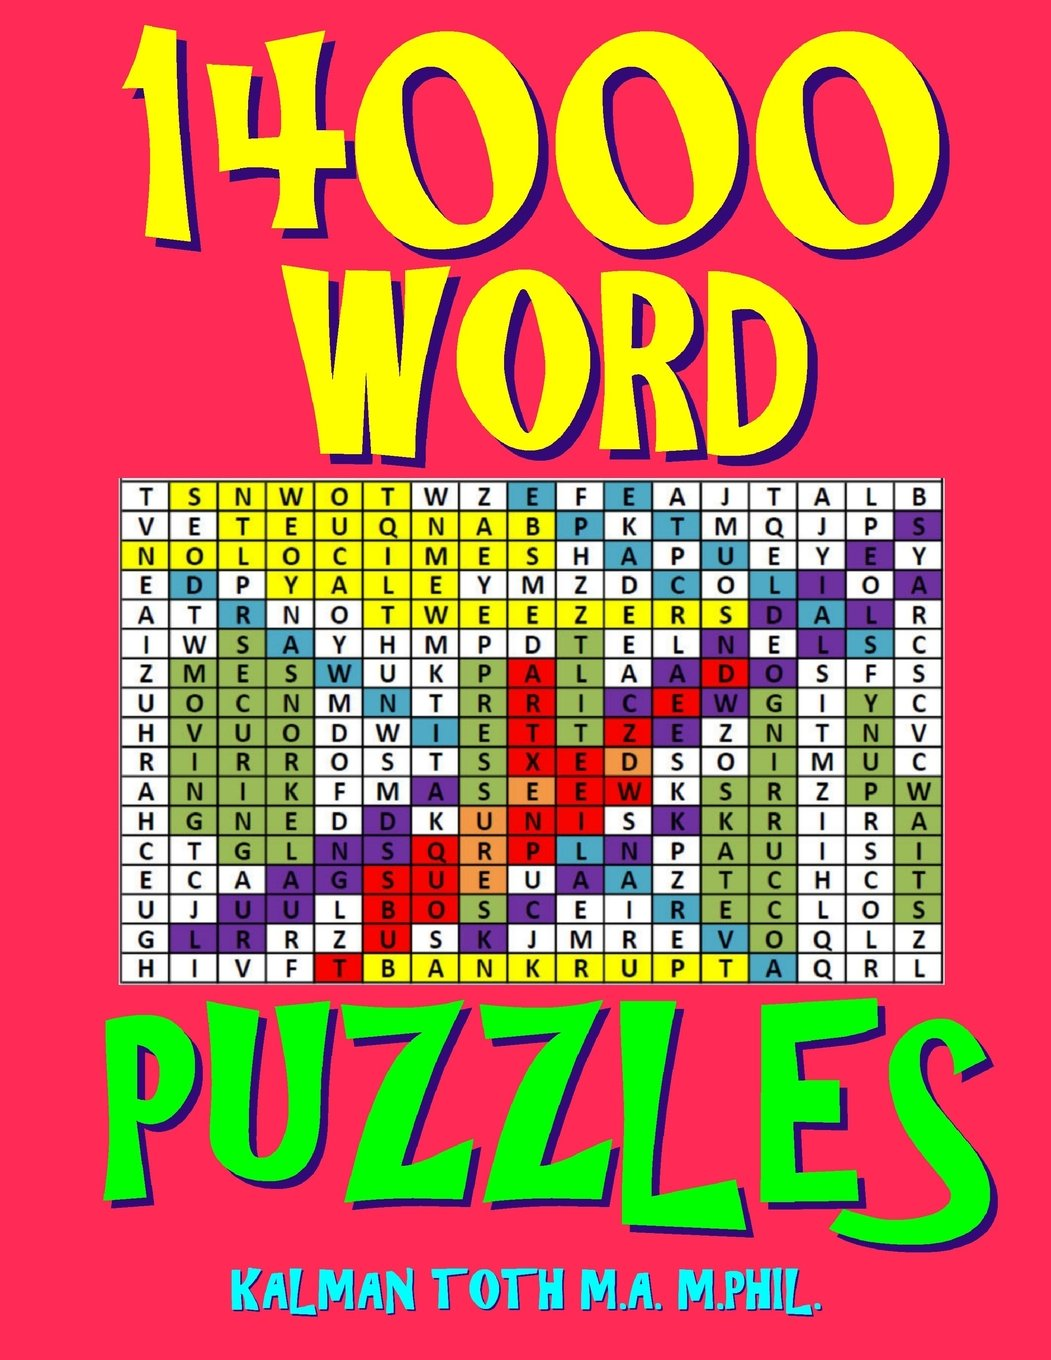 14000 Word Puzzles: 500 Large Print Challenging Word Search Puzzles Each with 28 Words pdf epub